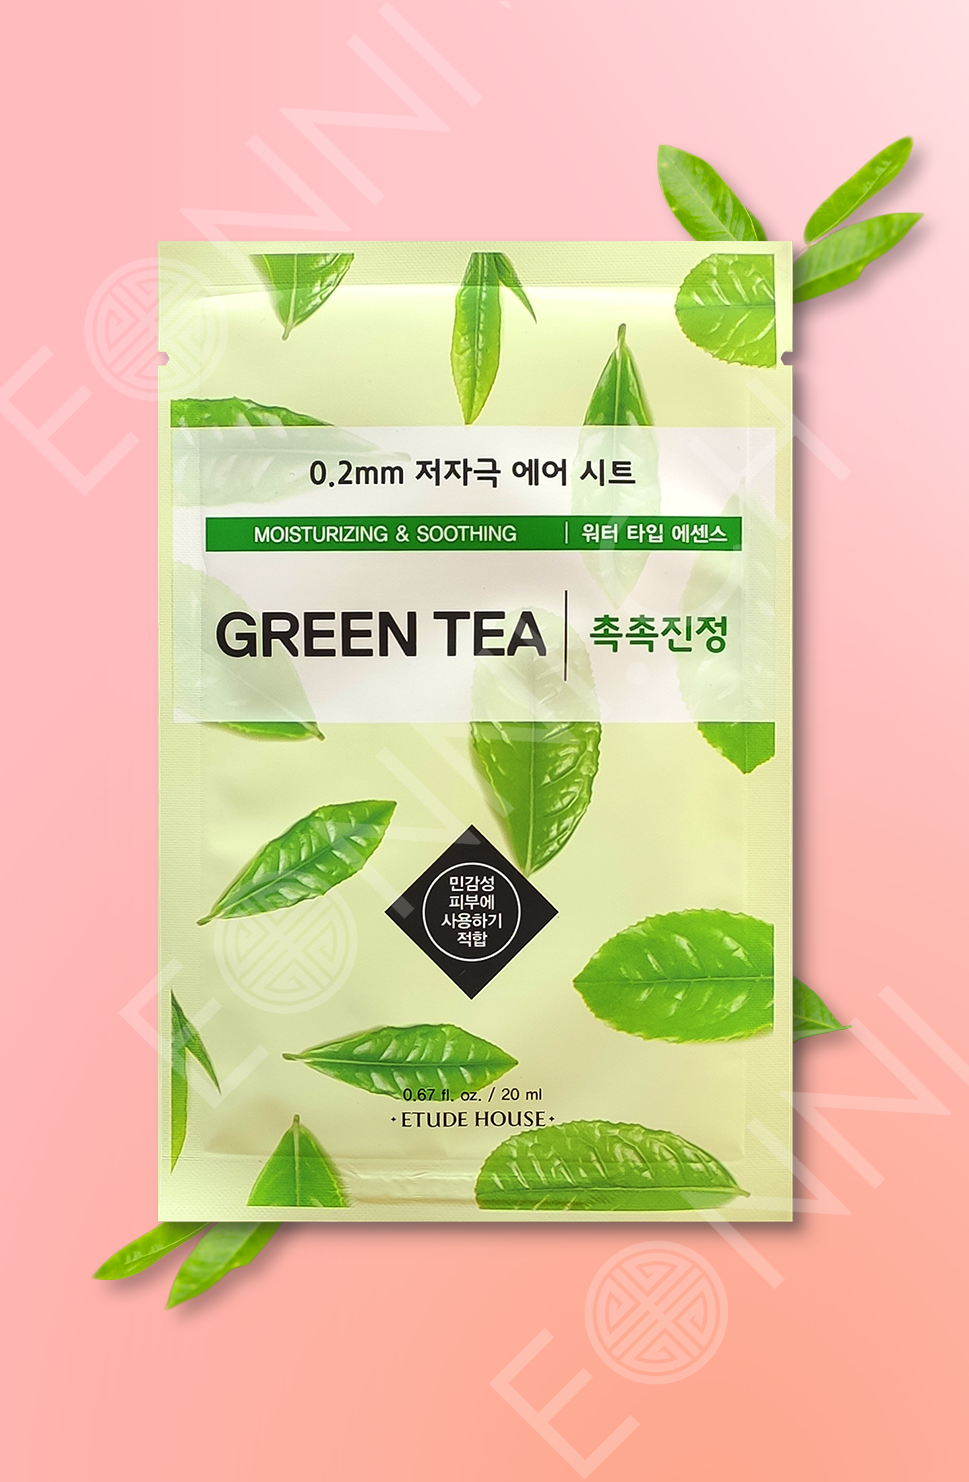 Etude House 0.2mm Therapy Air Mask Grüntee Tuchmaske